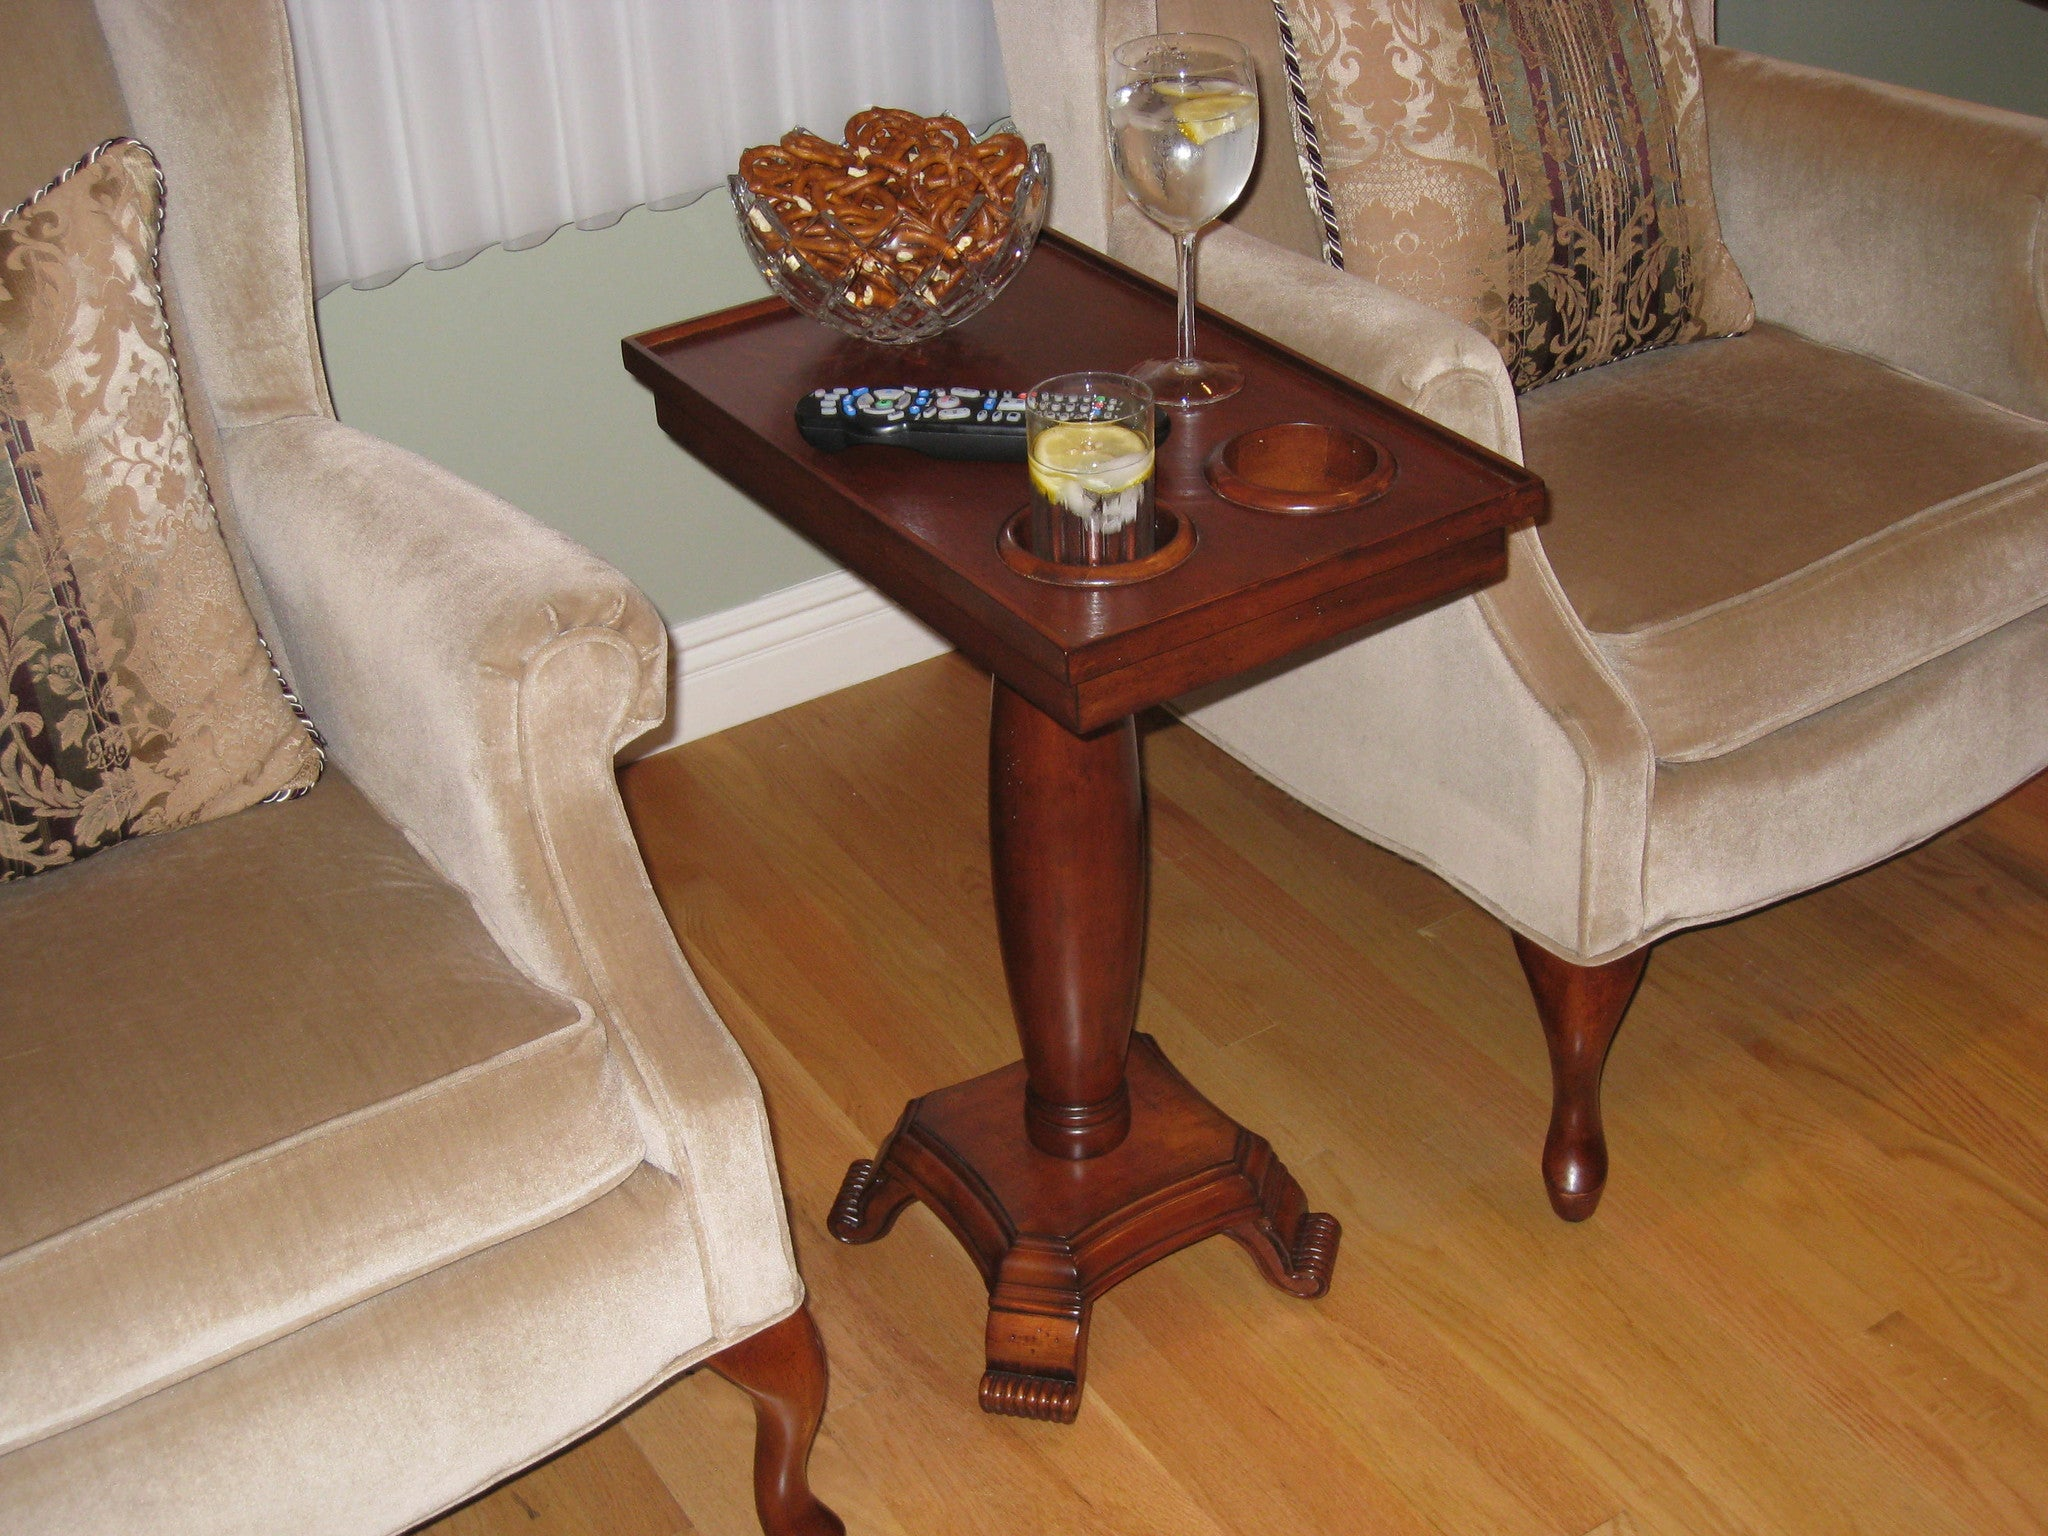 Man Cave Chairs With Cup Holder : Small chair side tables and outdoor